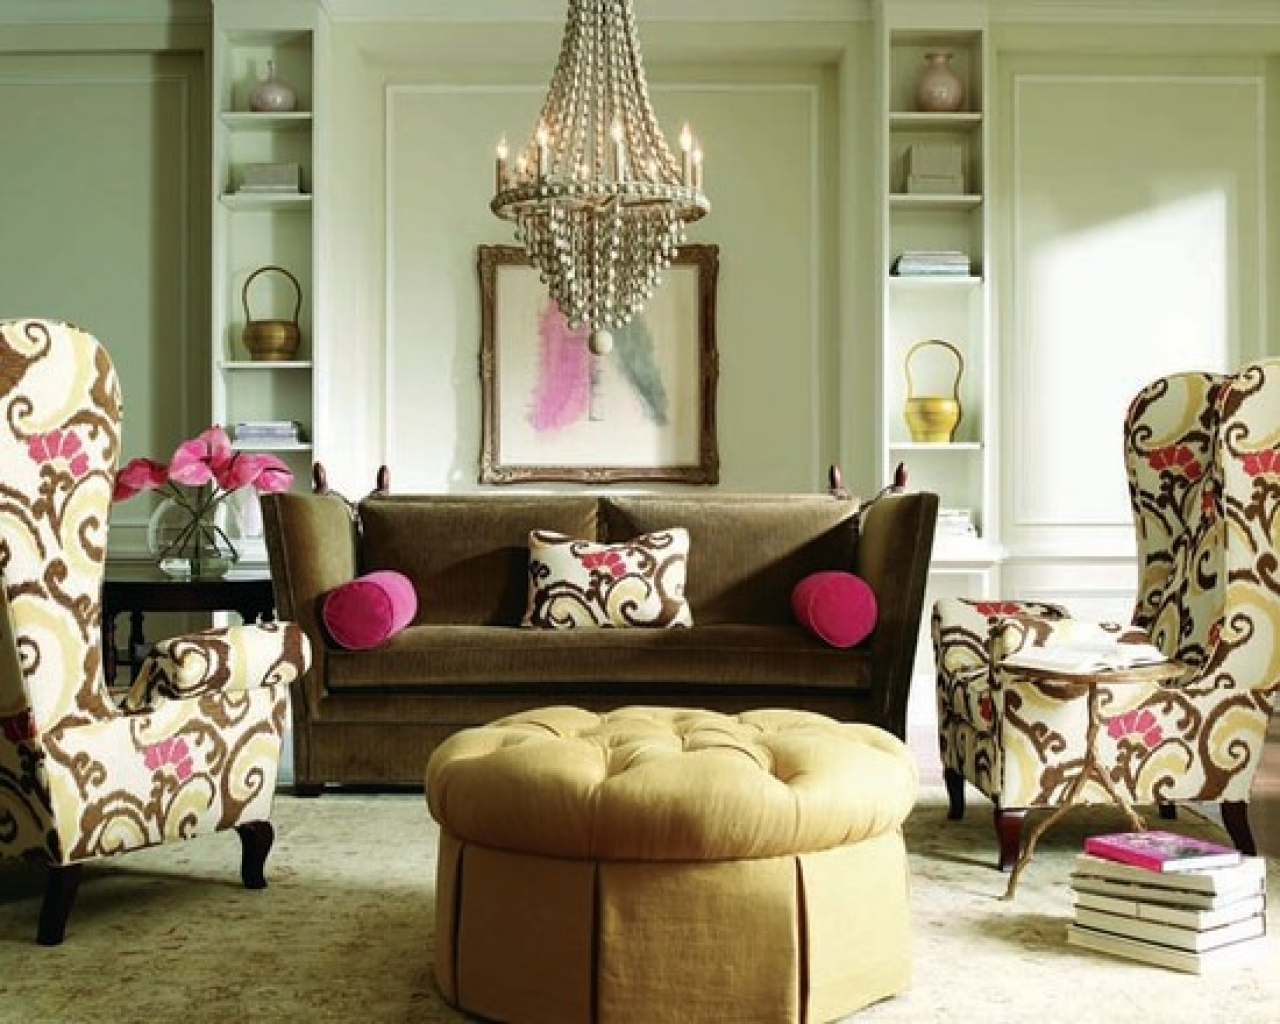 25 stunning eclectic living room decor ideas Living room photos decorating ideas